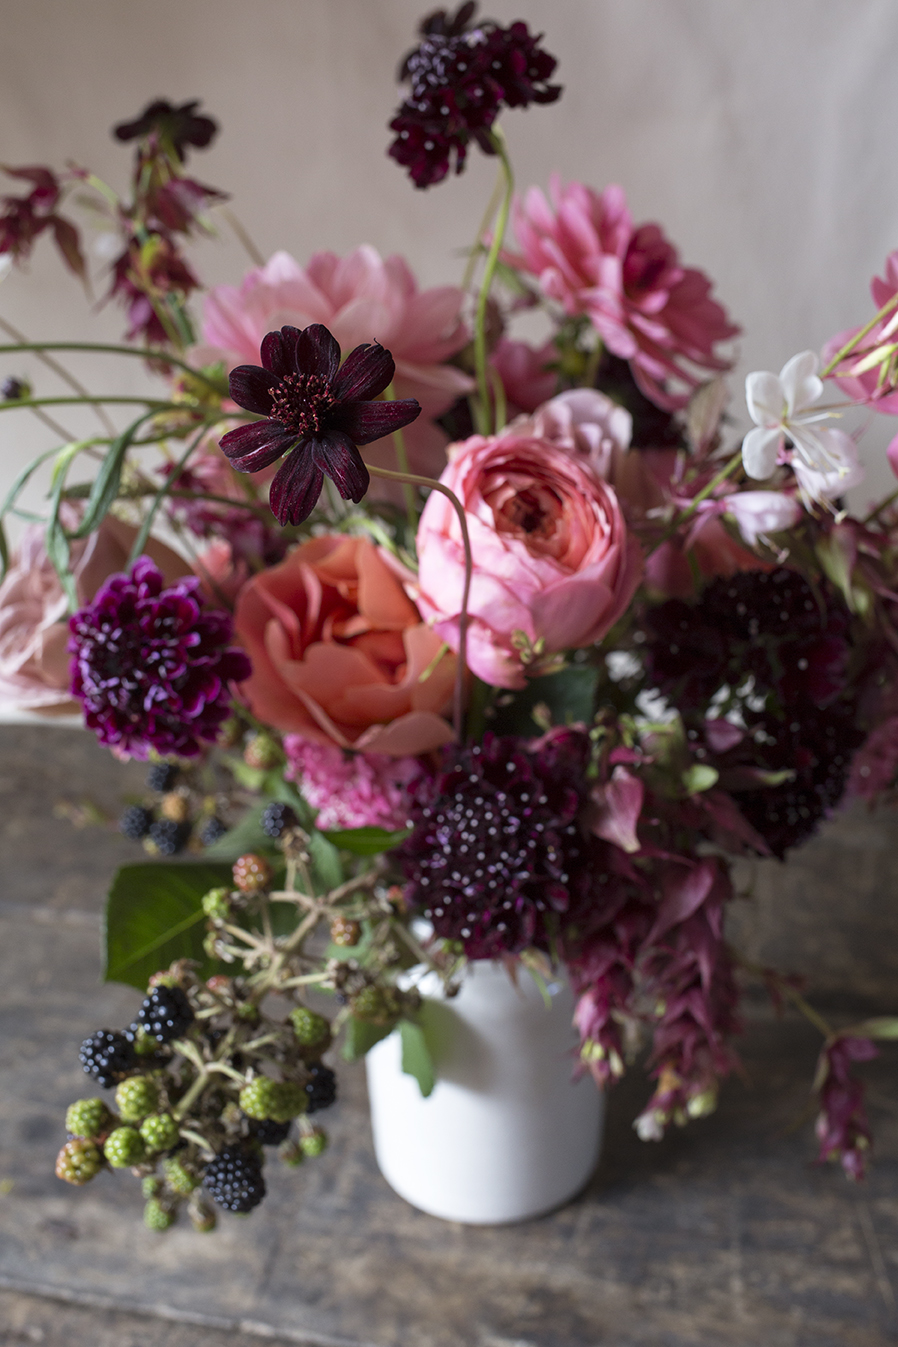 Good enough to eat: blackberries, 'Summer Fruits' scabious and velvety chocolate cosmos